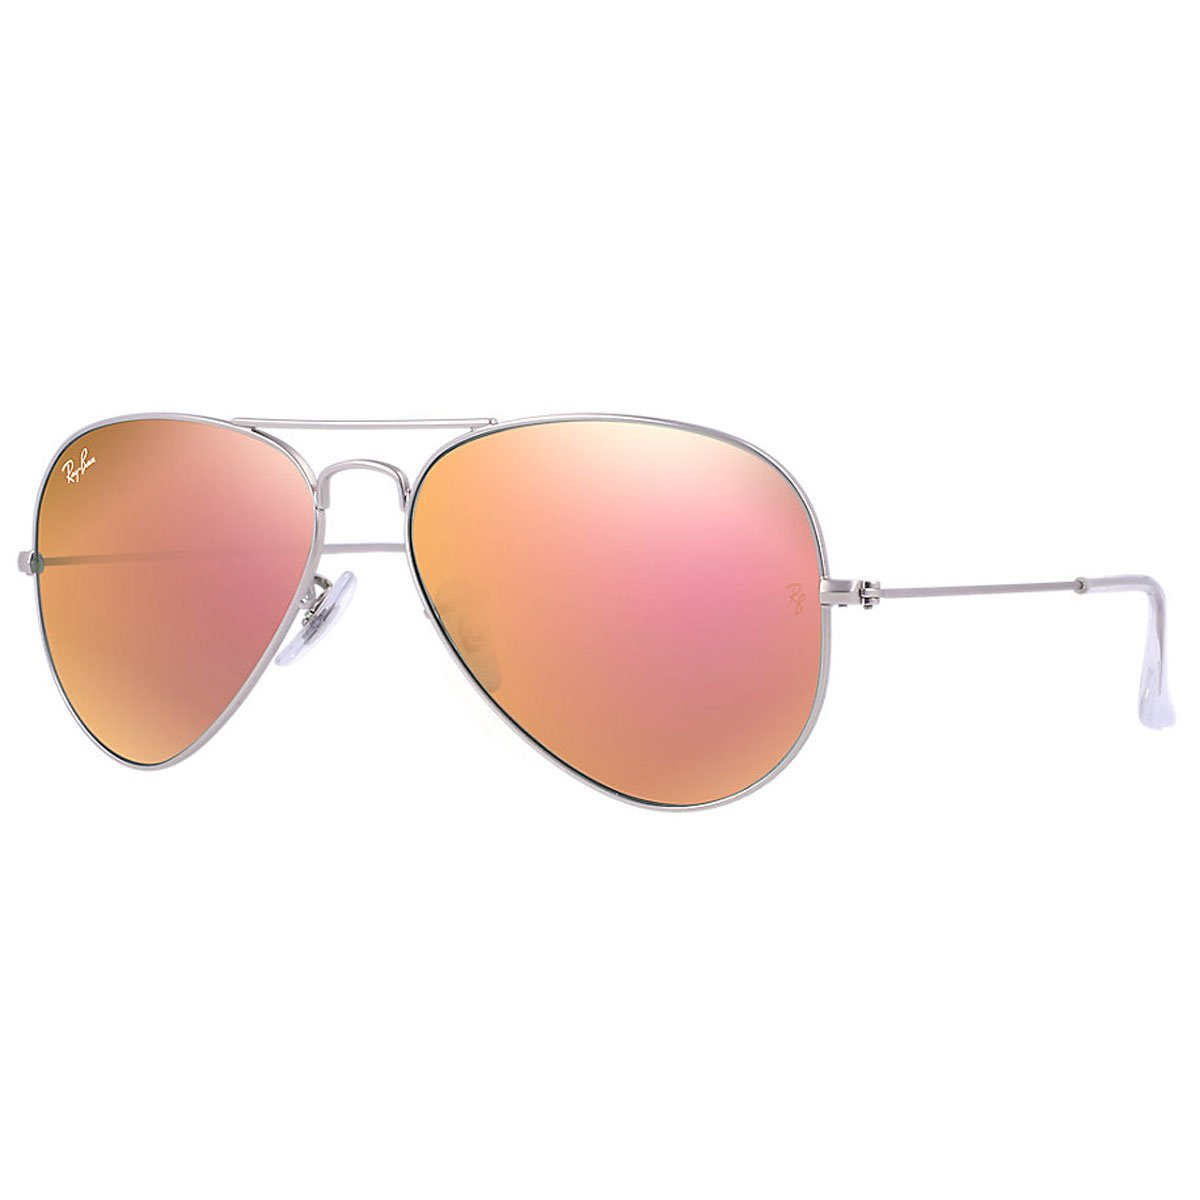 Ray-Ban Sunglasses - RB3025 Aviator Large Metal / Frame: Matte Silver Lens: Brown Mirror Pink (55)